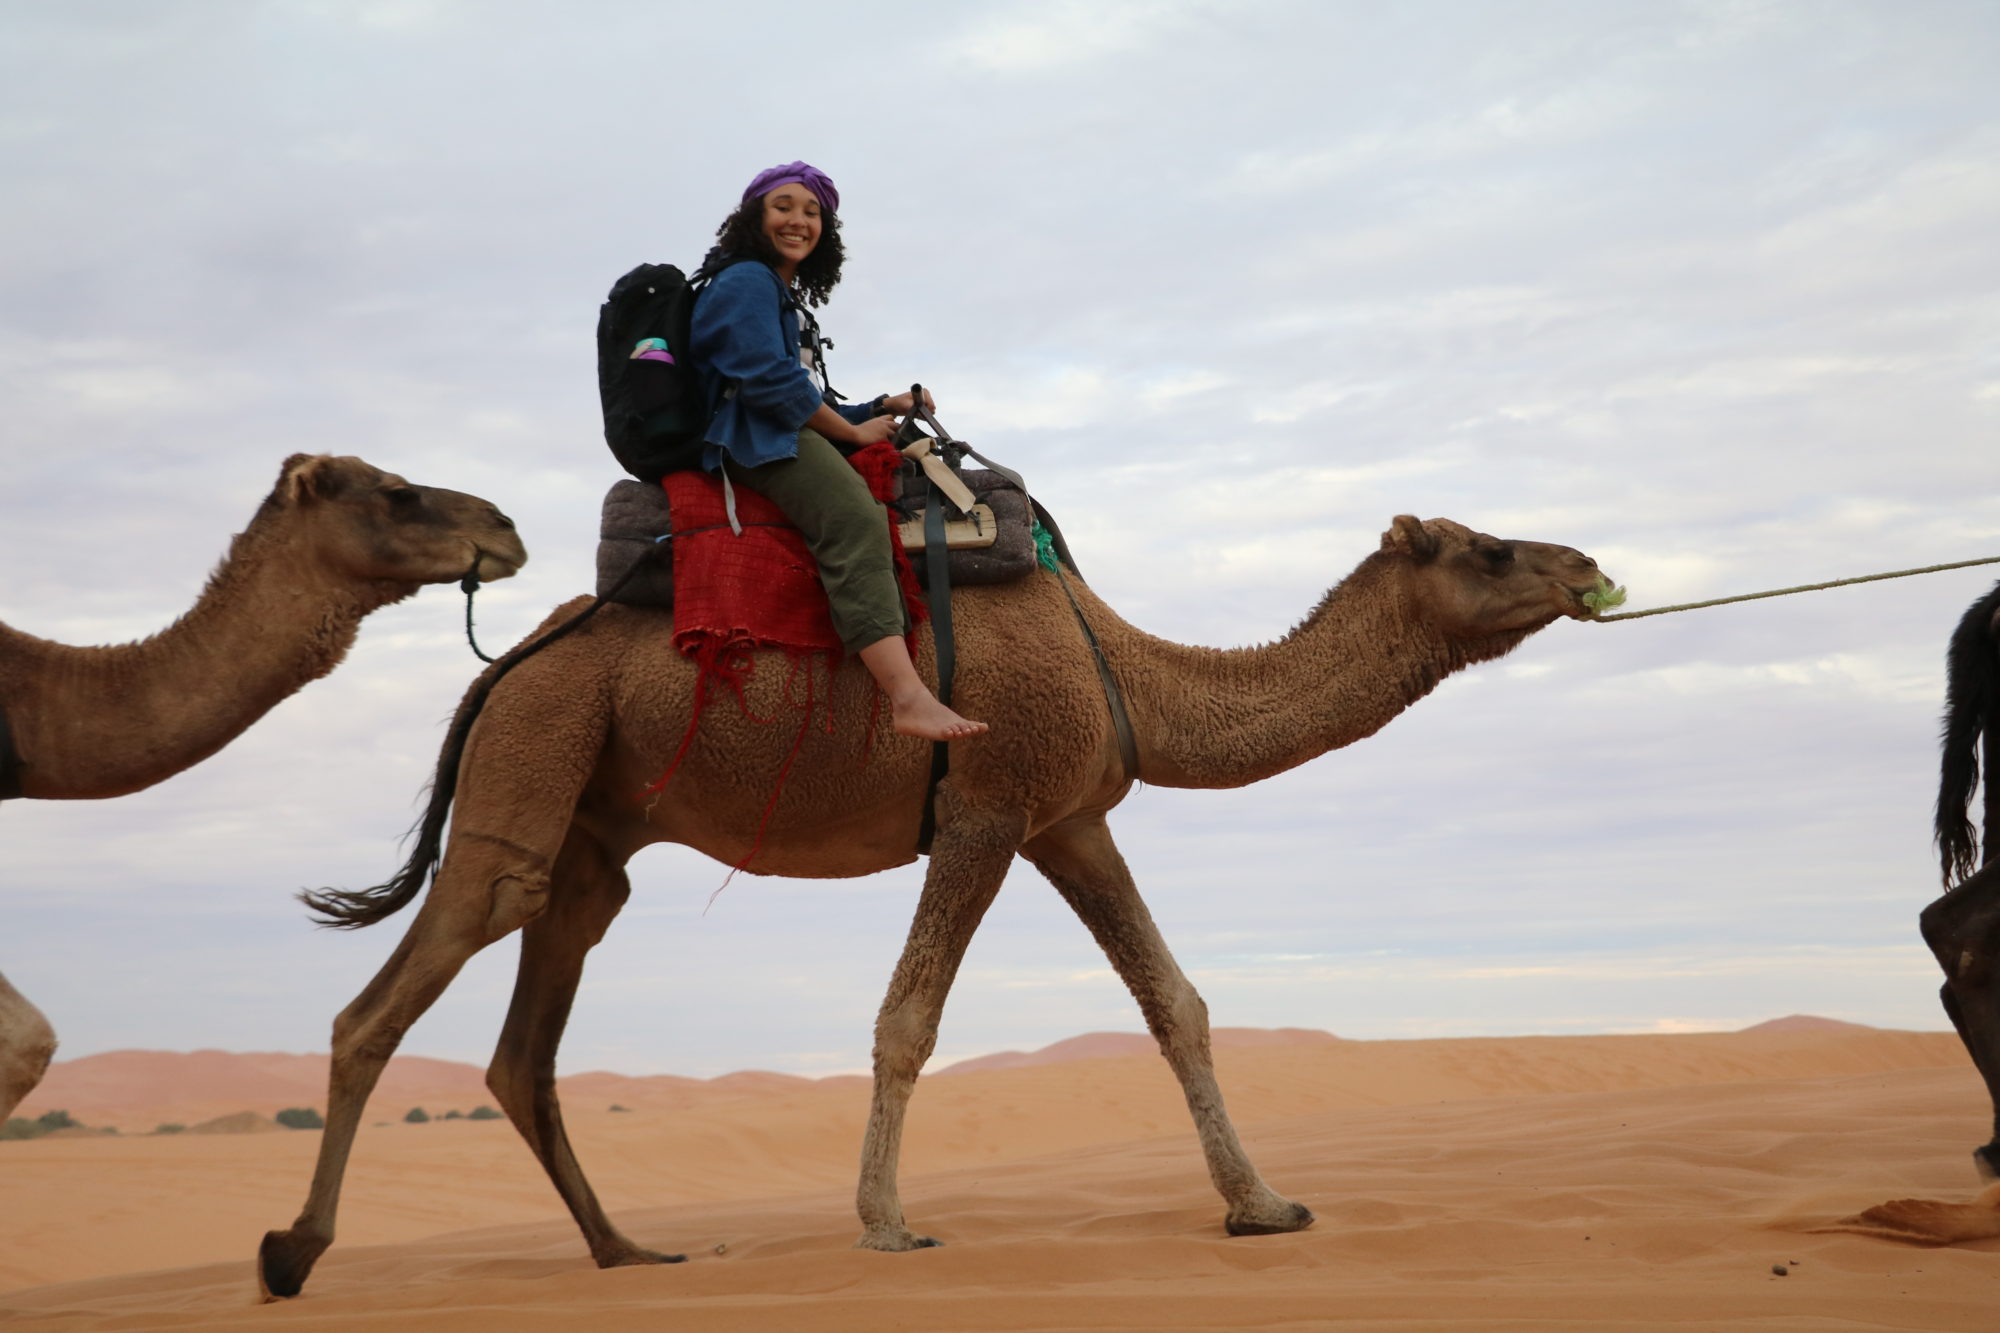 Photo of Alyssa on Camel